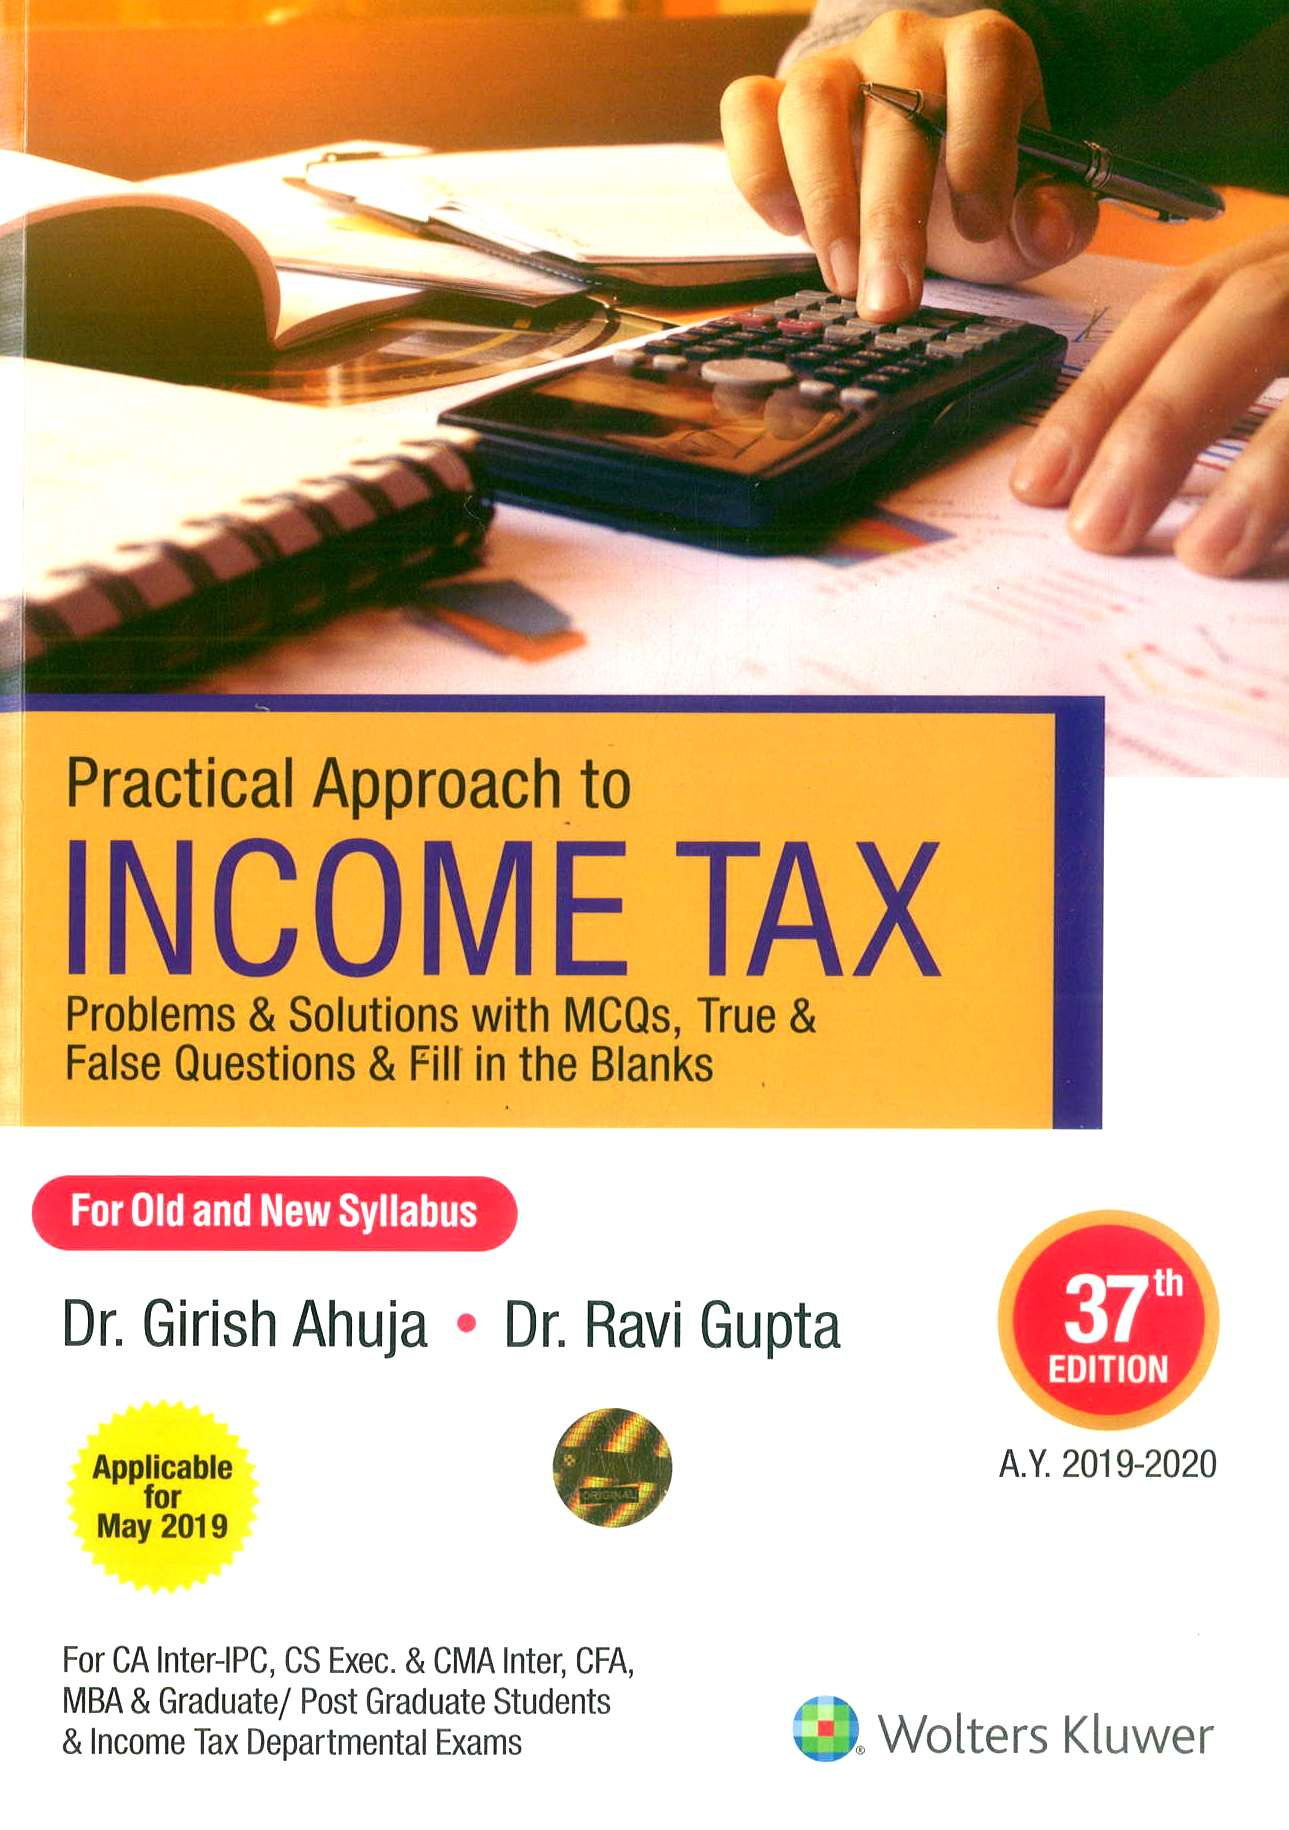 CCH Practical Approach to Income tax (A.Y. 2019-2020) For CA IPCC By Dr Girish Ahuja Dr Ravi Gupta Applicable for 37th edition for May June 2020 Exam